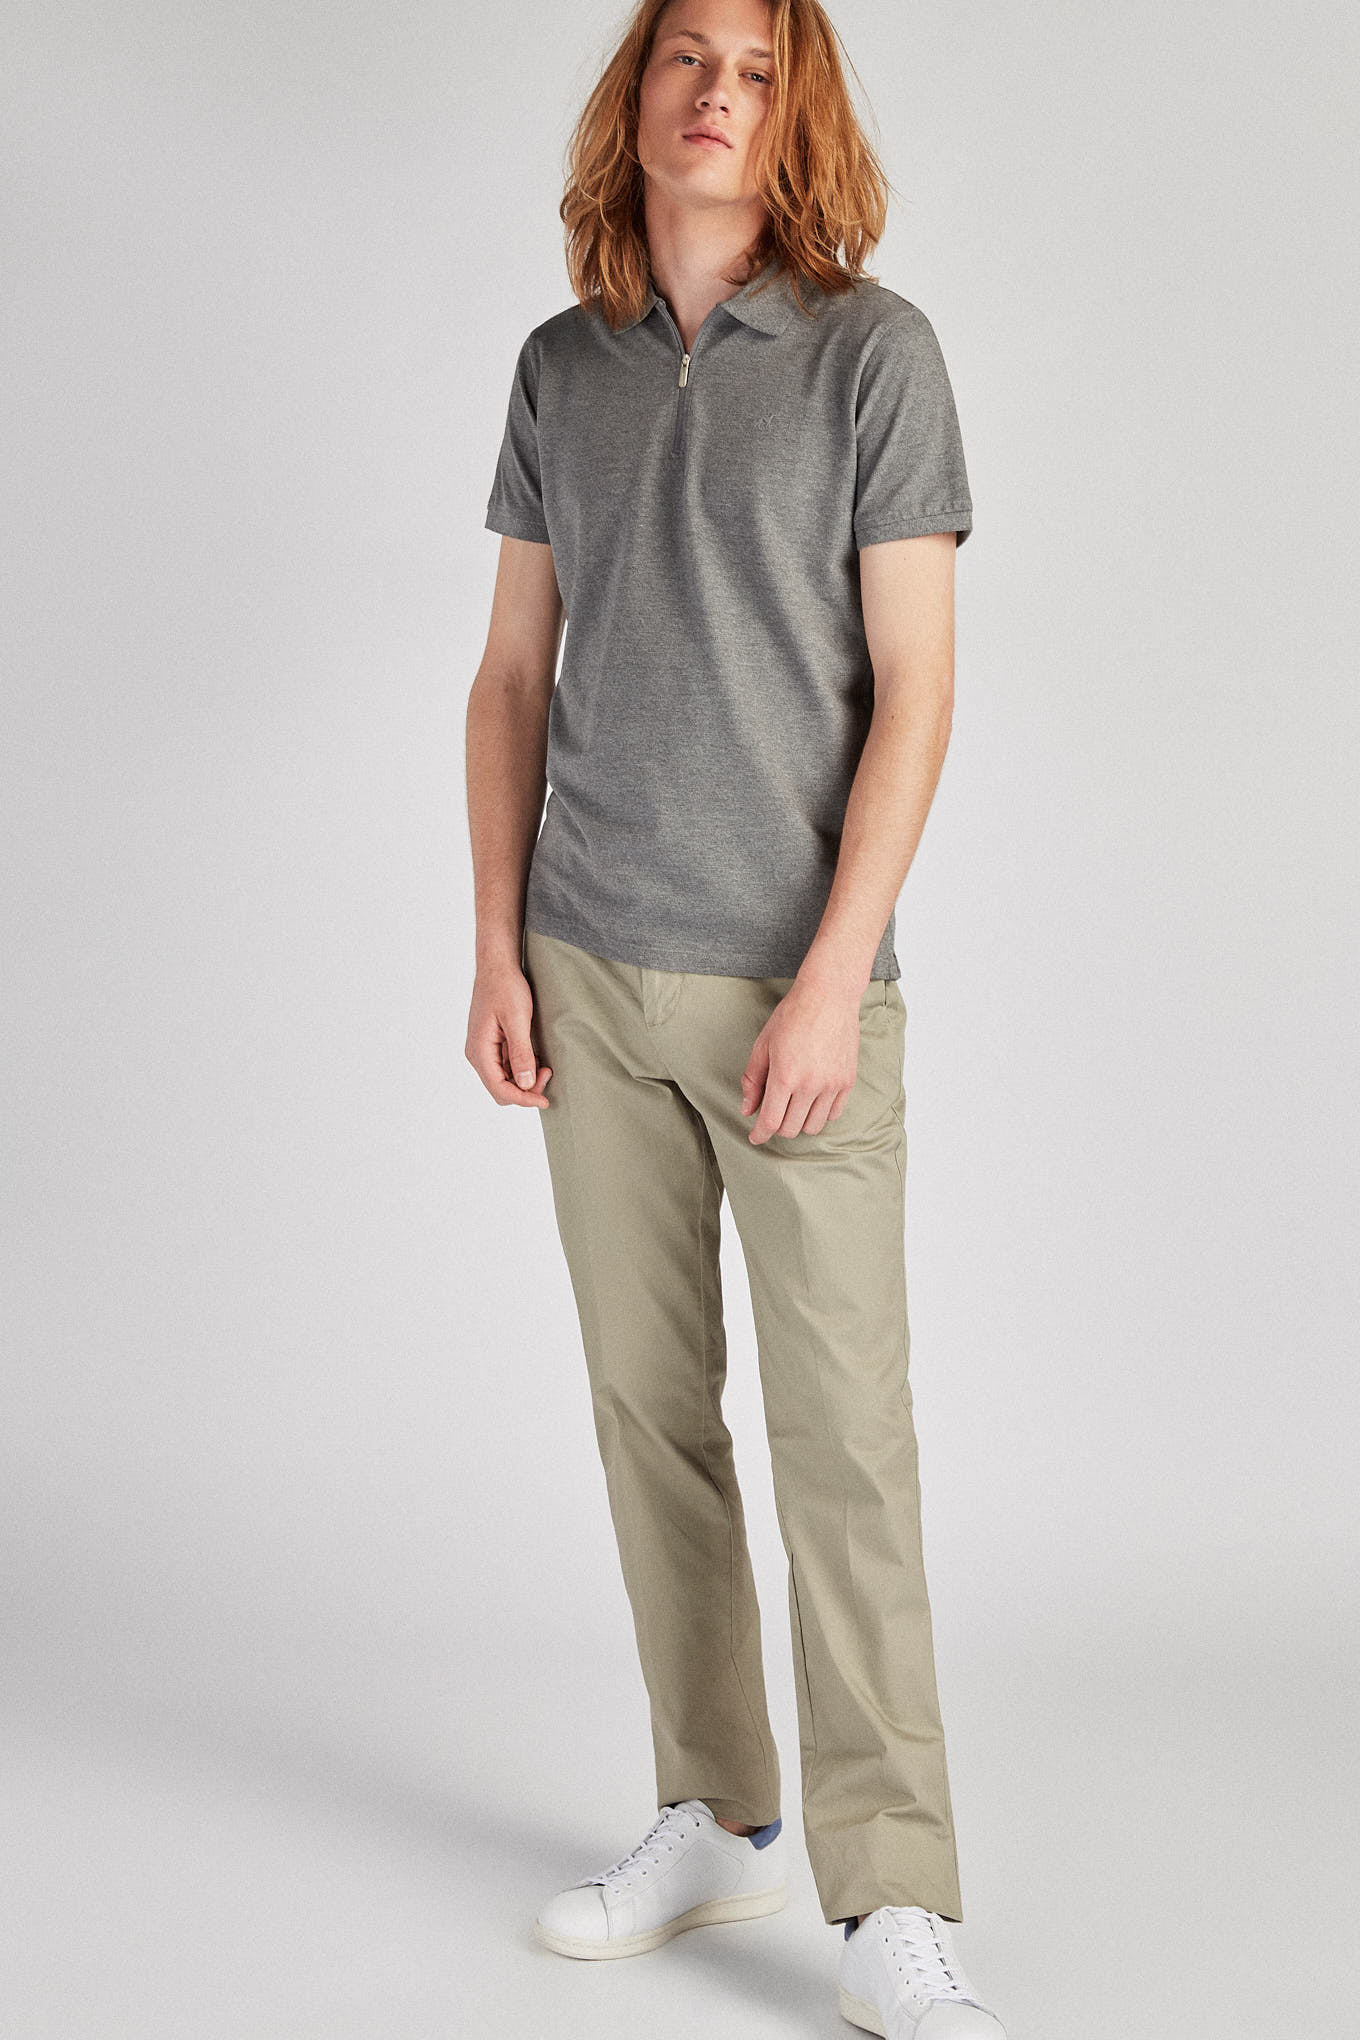 Chino Trousers Khaki Sport Man